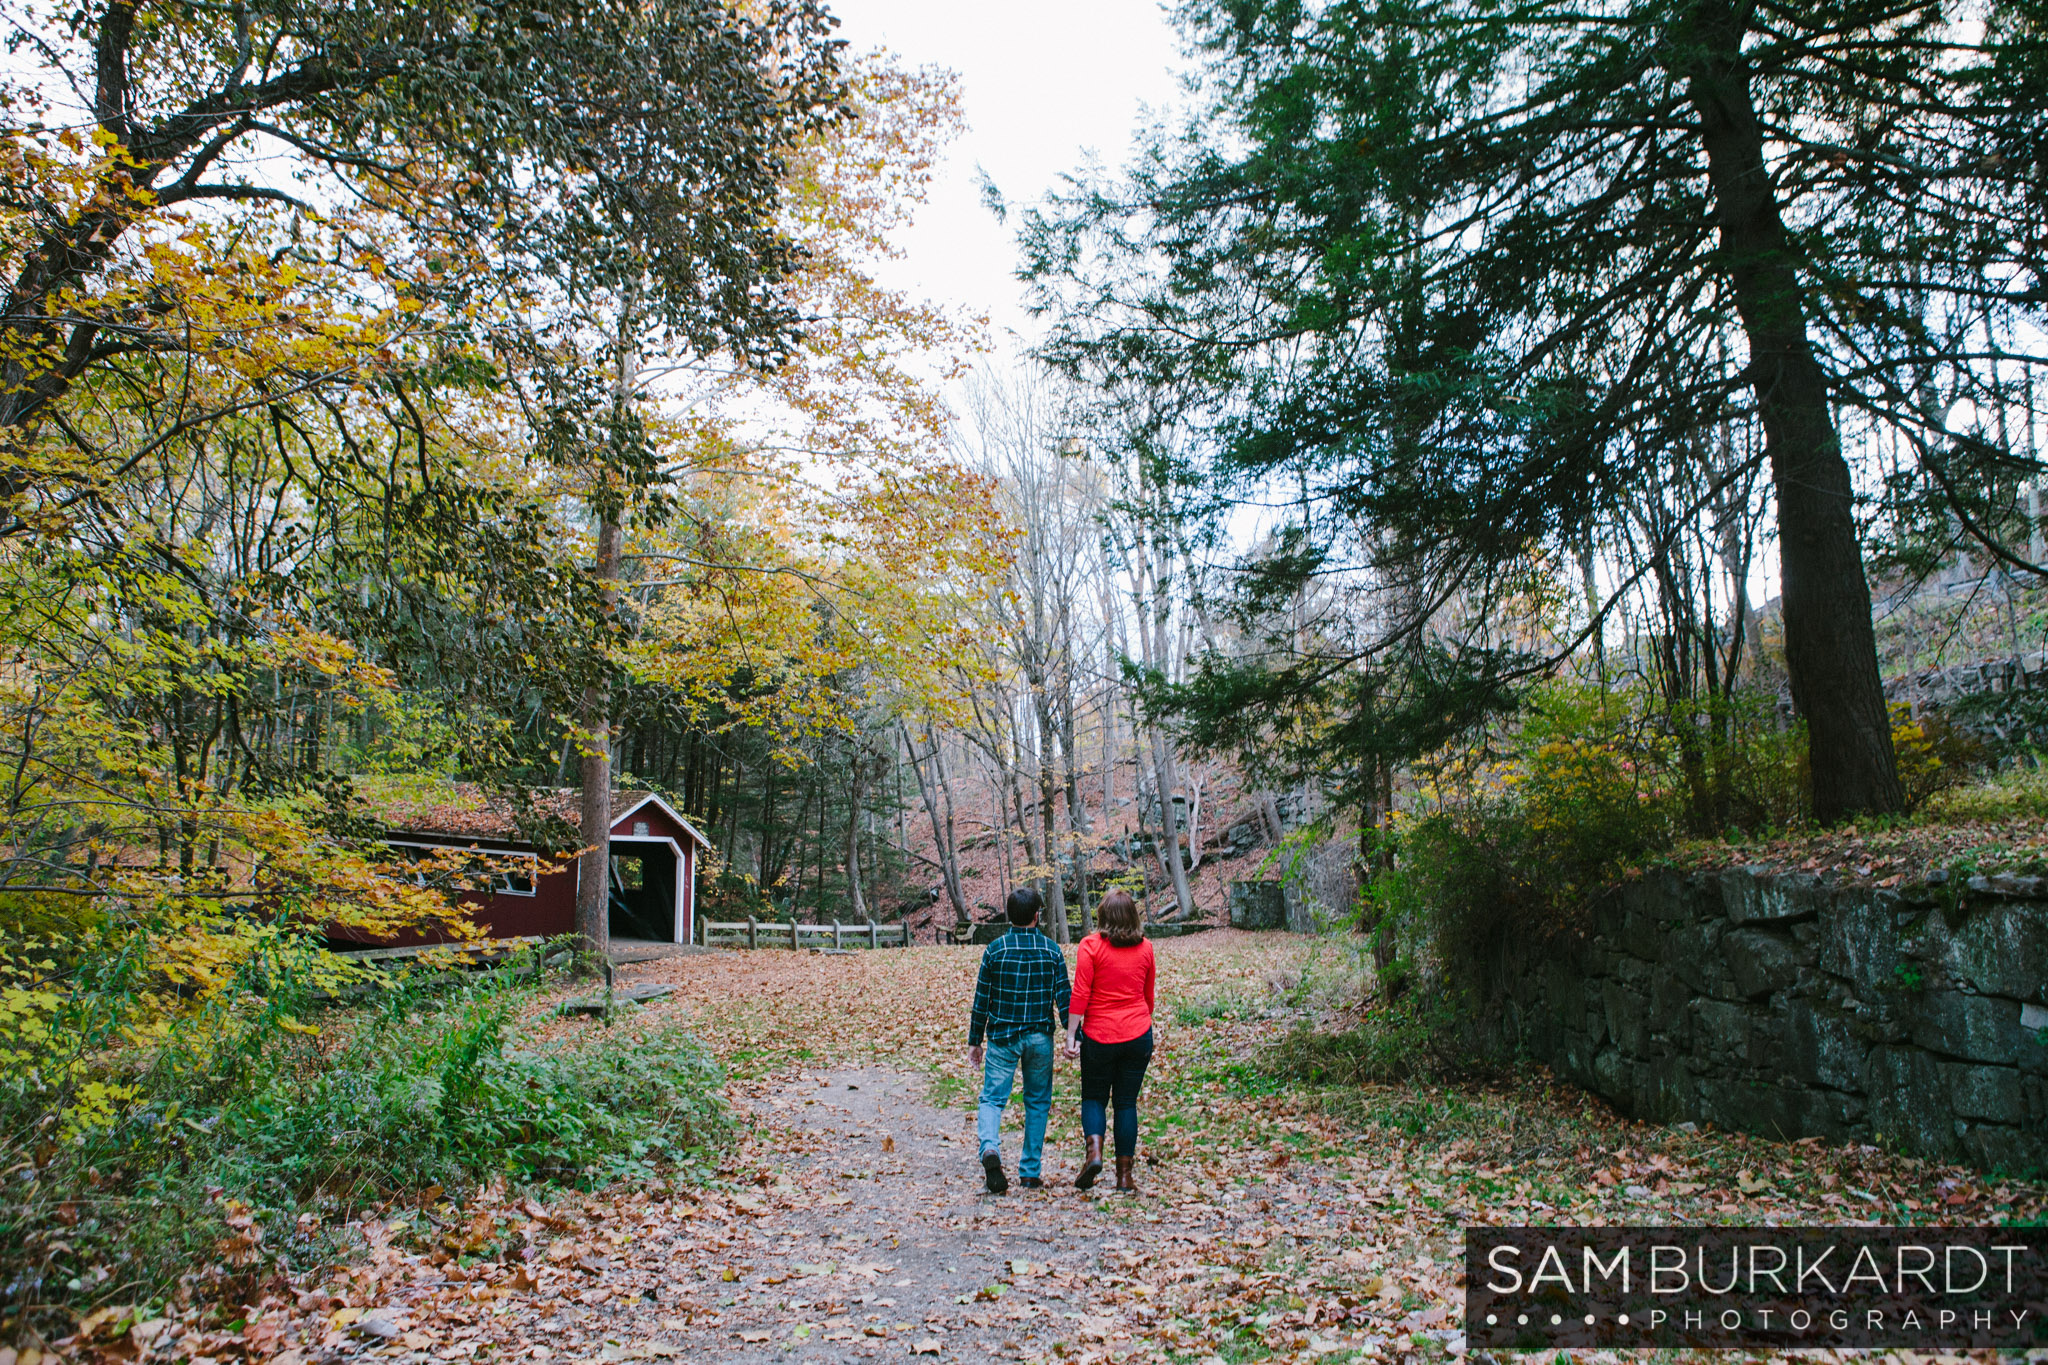 samburkardt-fall-engagement-connecticut-foliage-southford-falls-state-park_0014.jpg